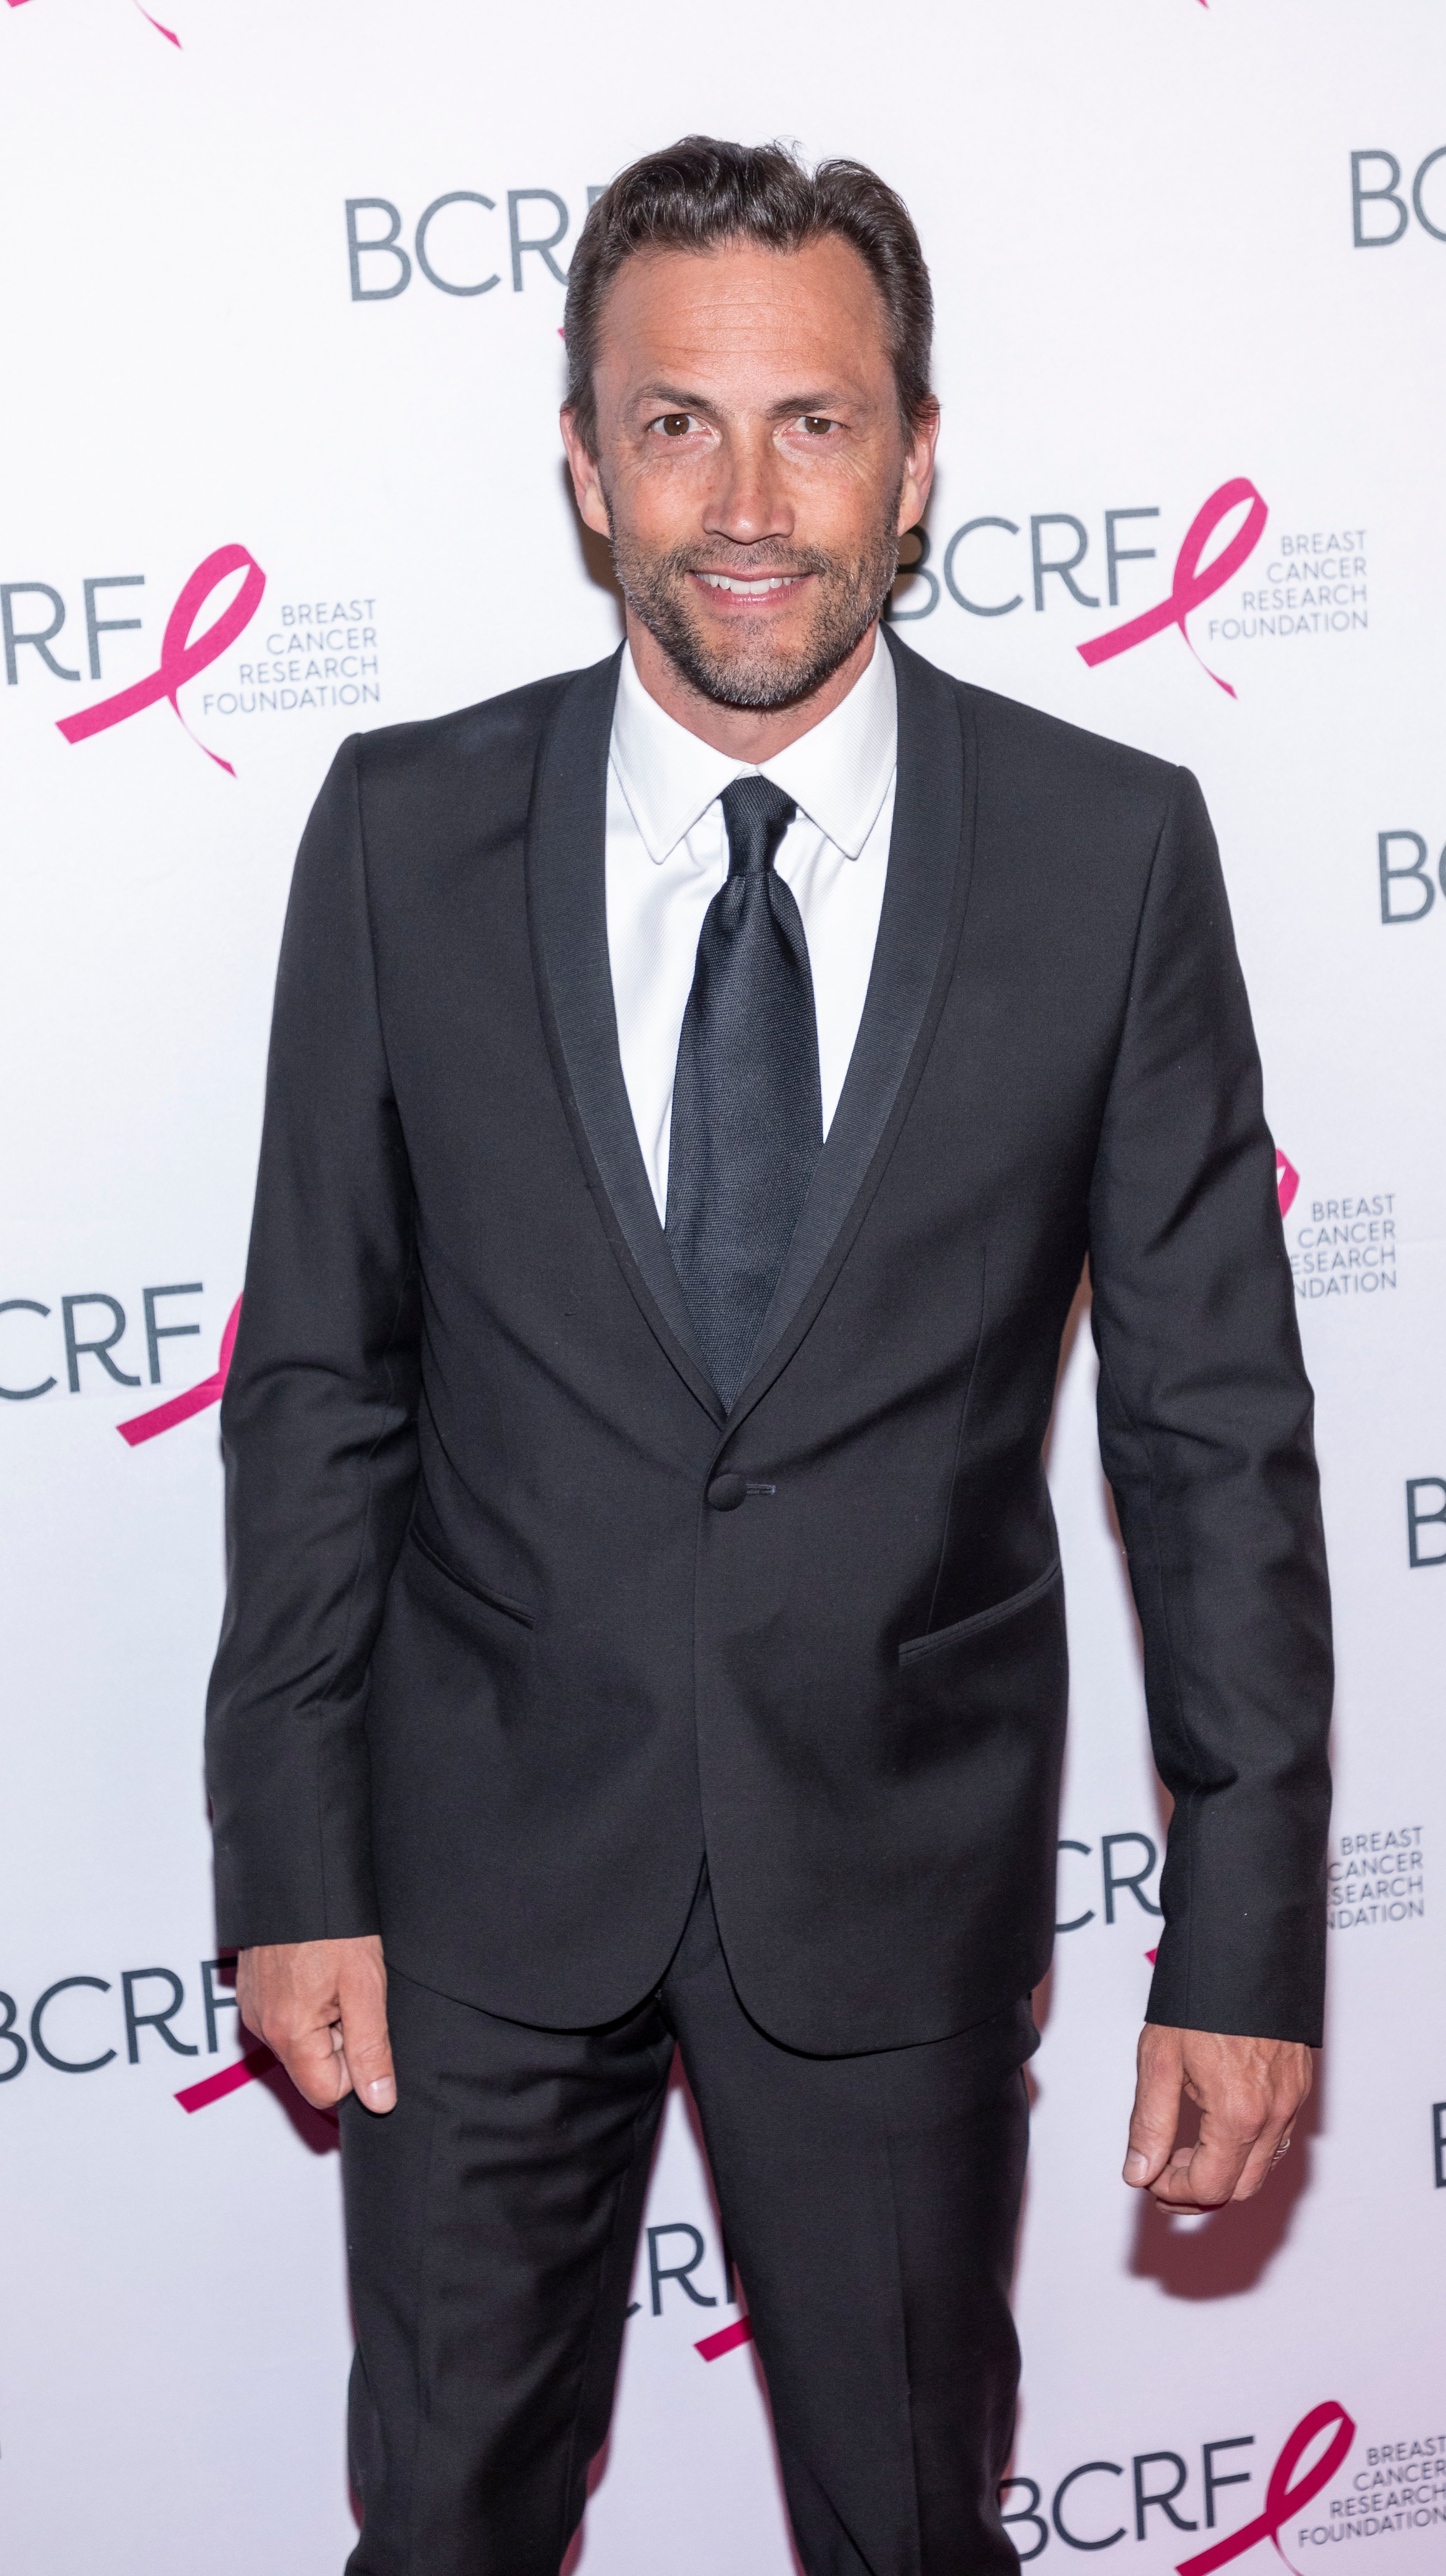 Andrew Shue pictured at the BCRF Hot Pink Party, 2019. | Photo: Shutterstock